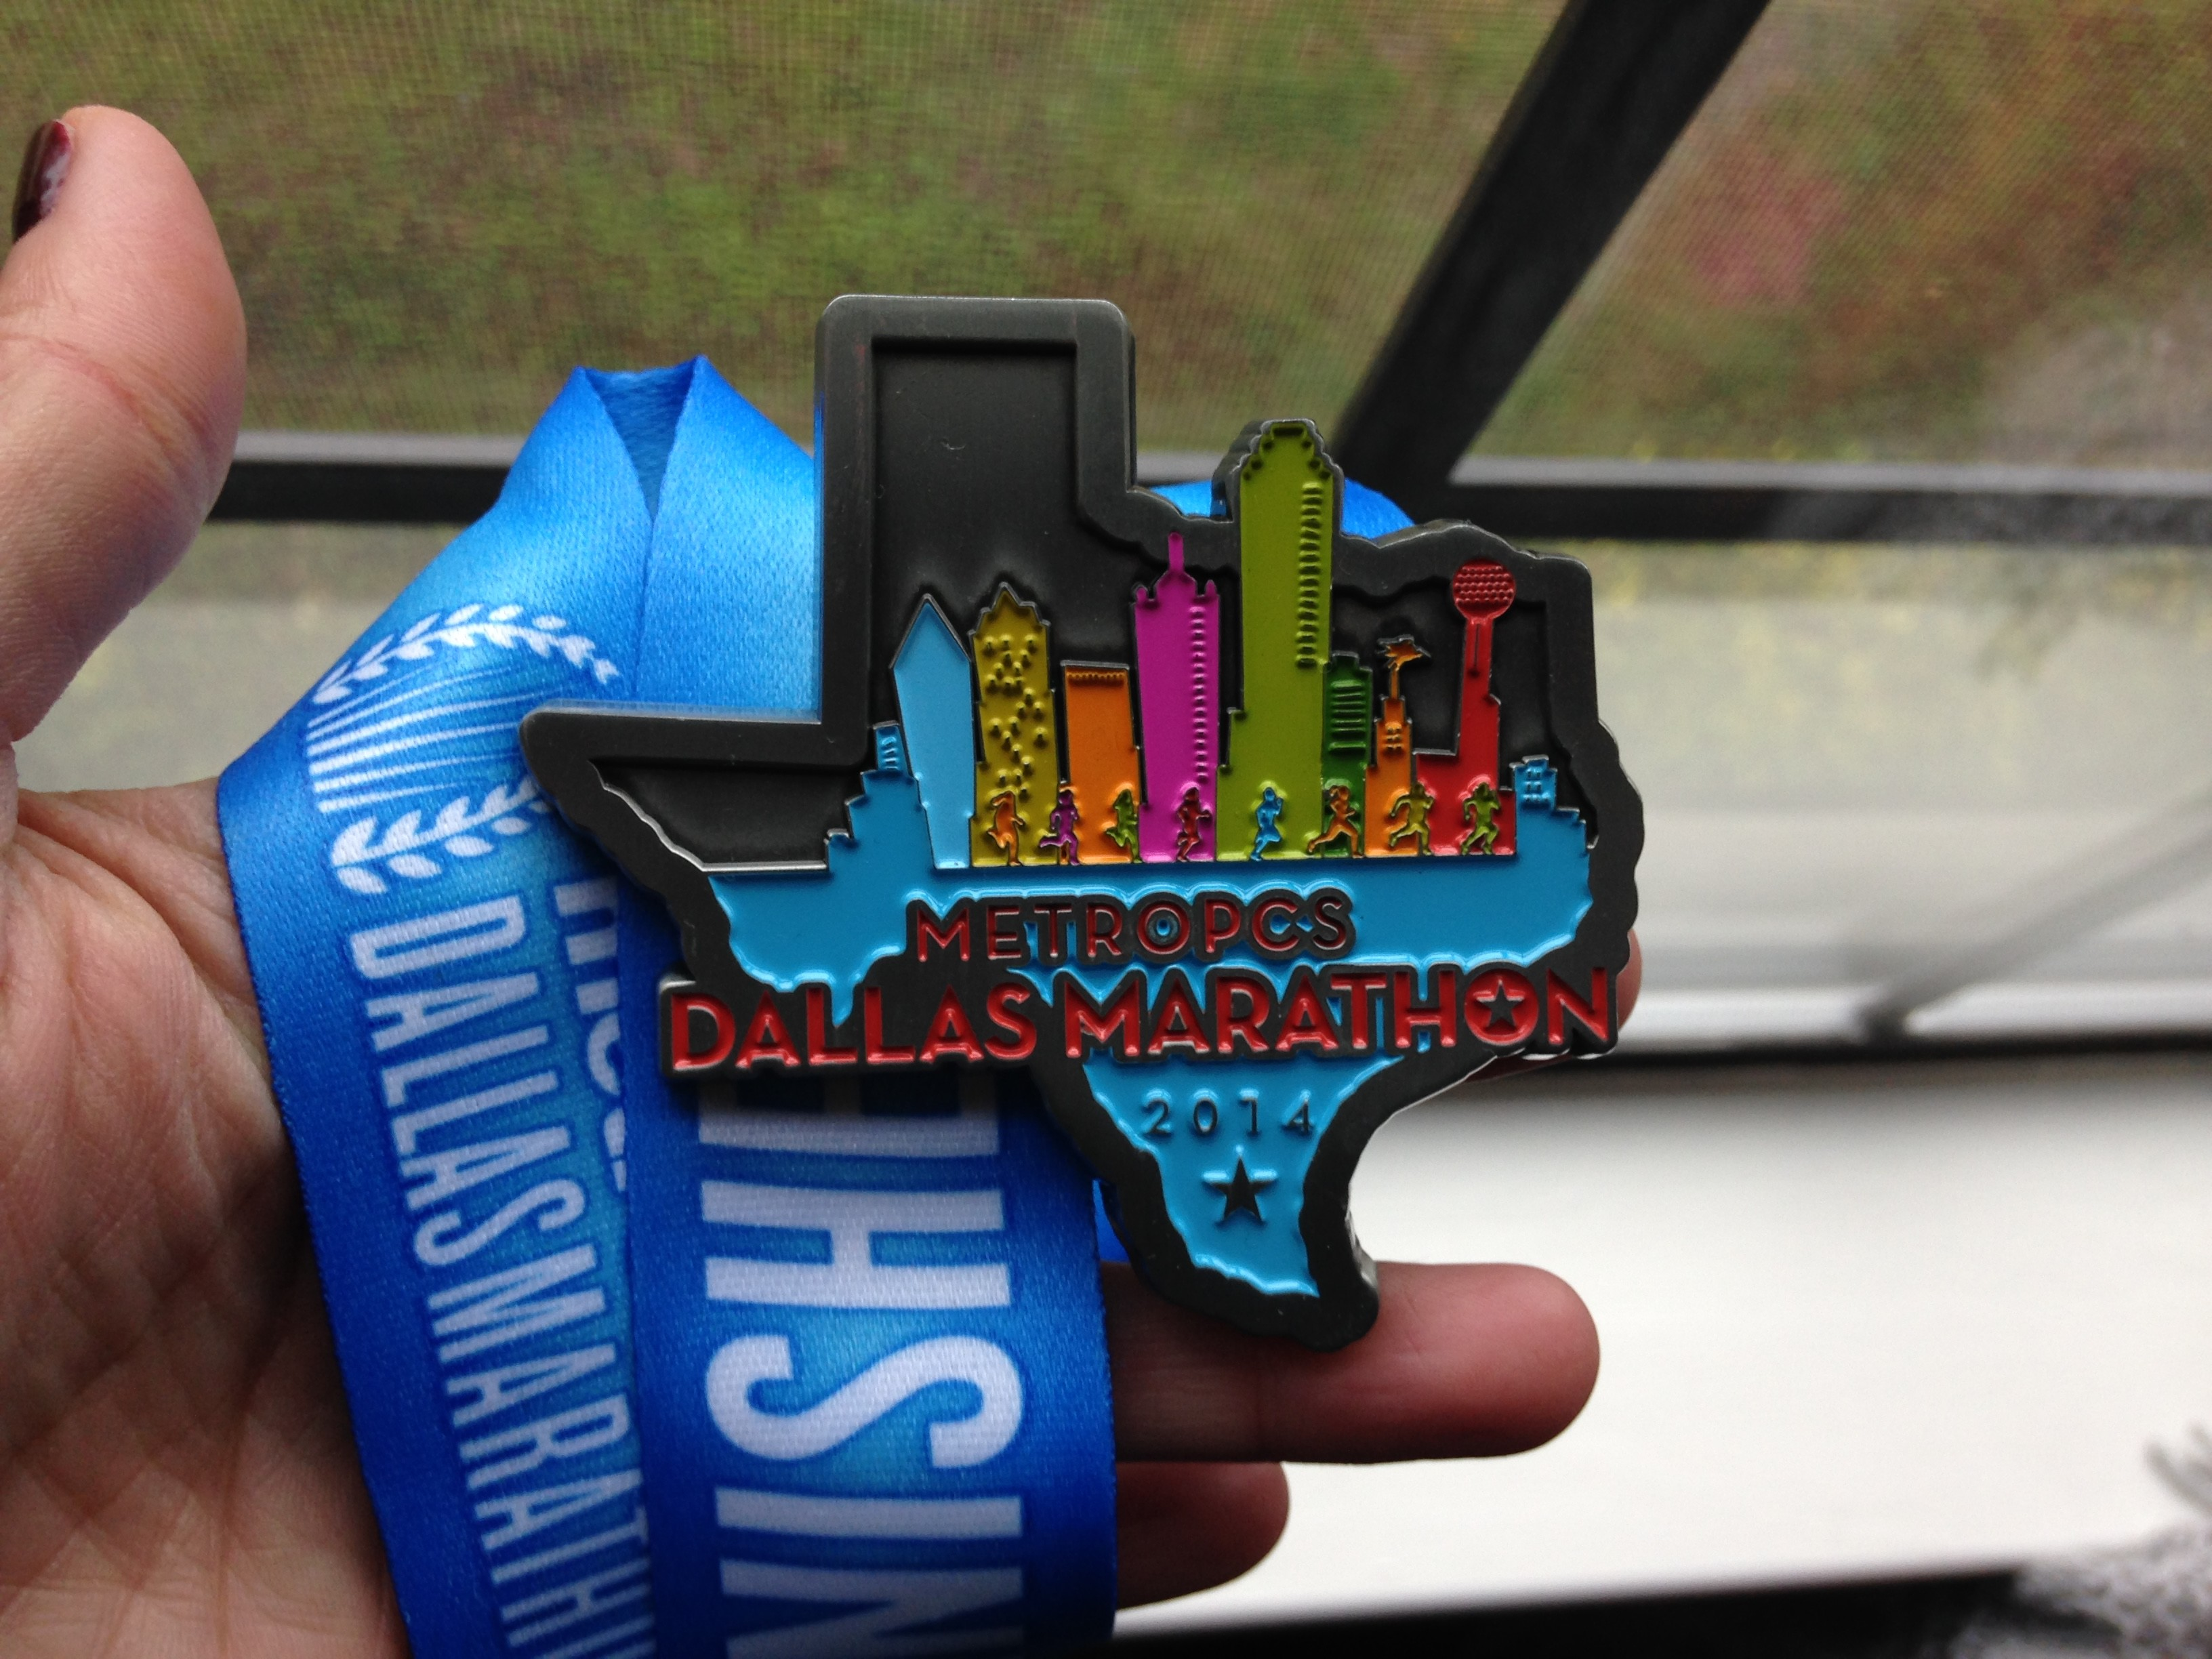 Dallas Marathon 2014 finisher's medal